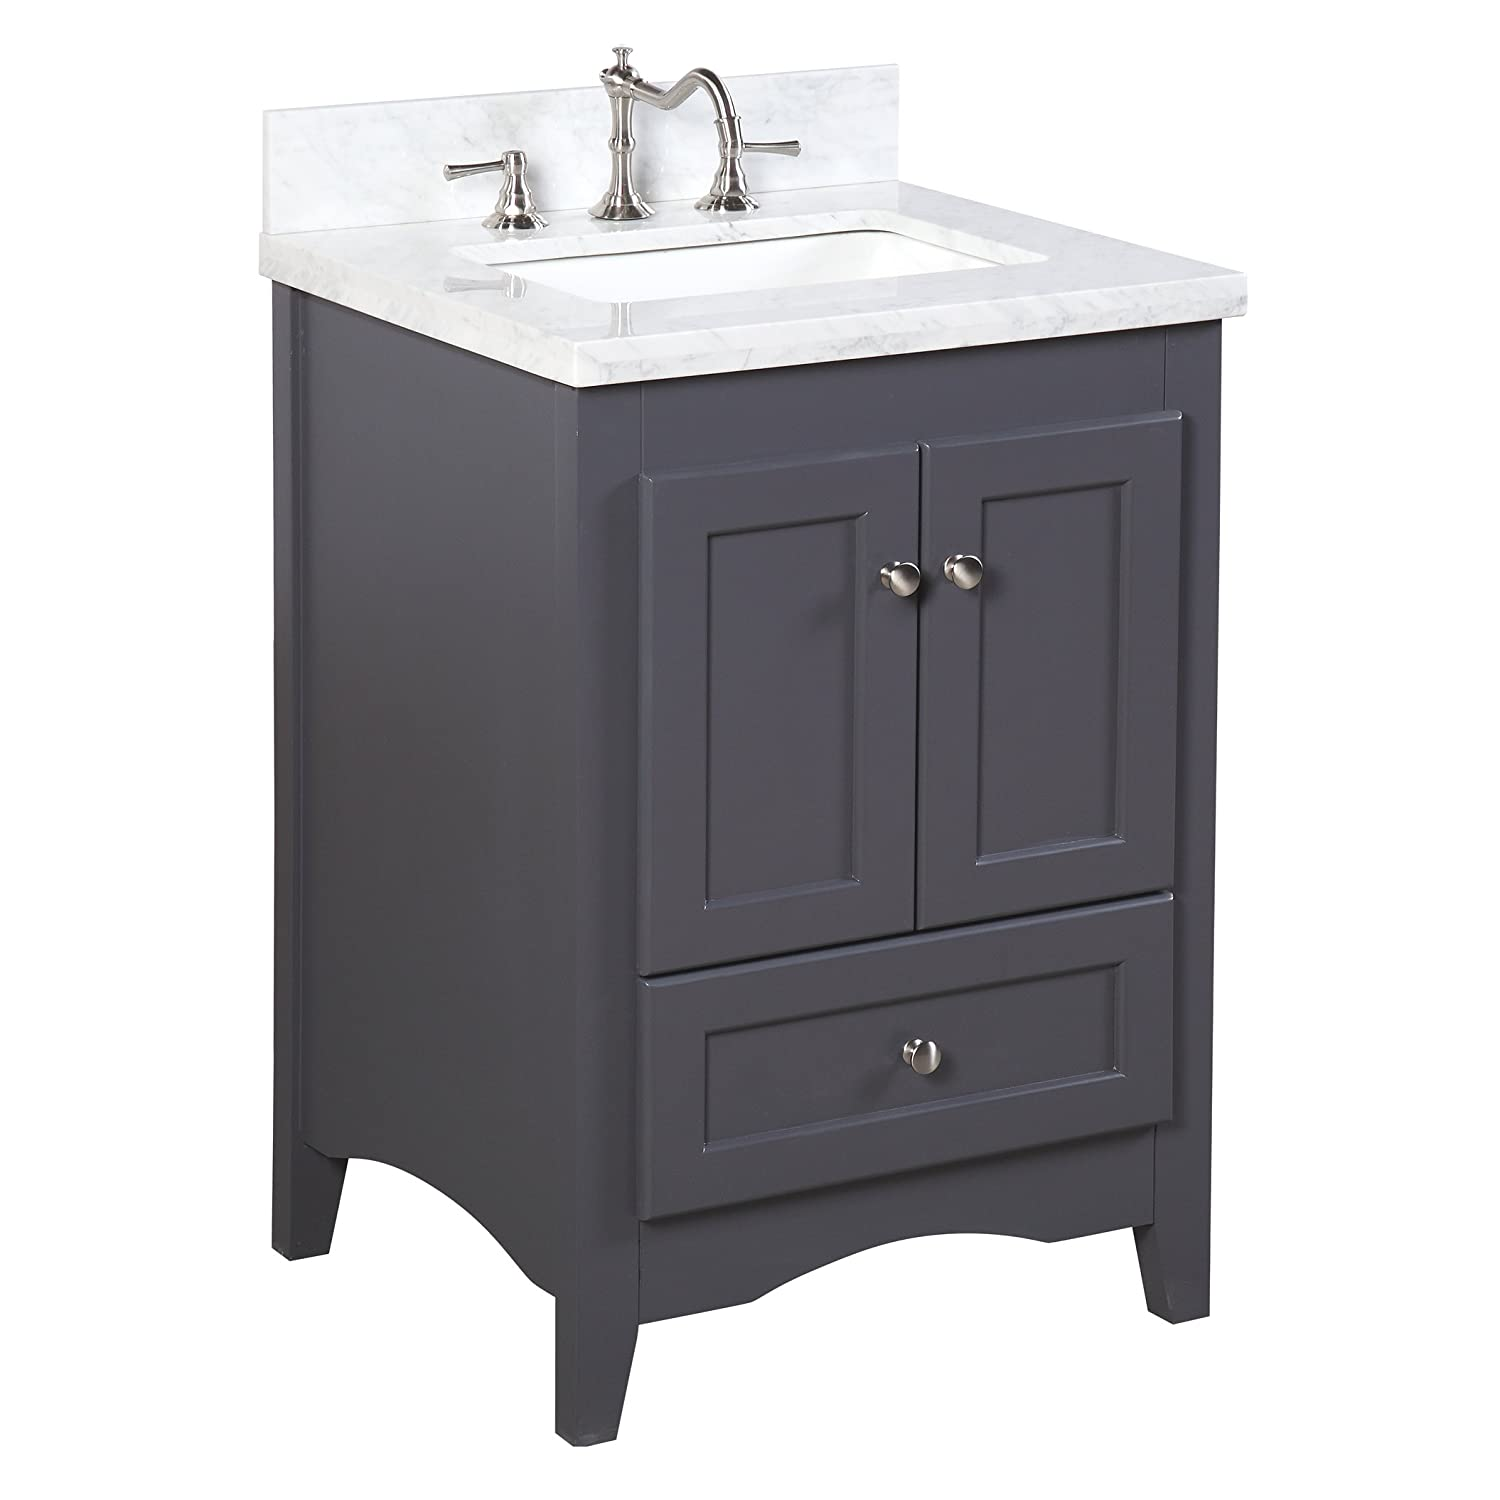 Abbey 24-inch Bathroom Vanity Carrara Charcoal Gray Includes a Soft Close Drawer, Self Closing Door Hinges and Rectangular Ceramic Sink